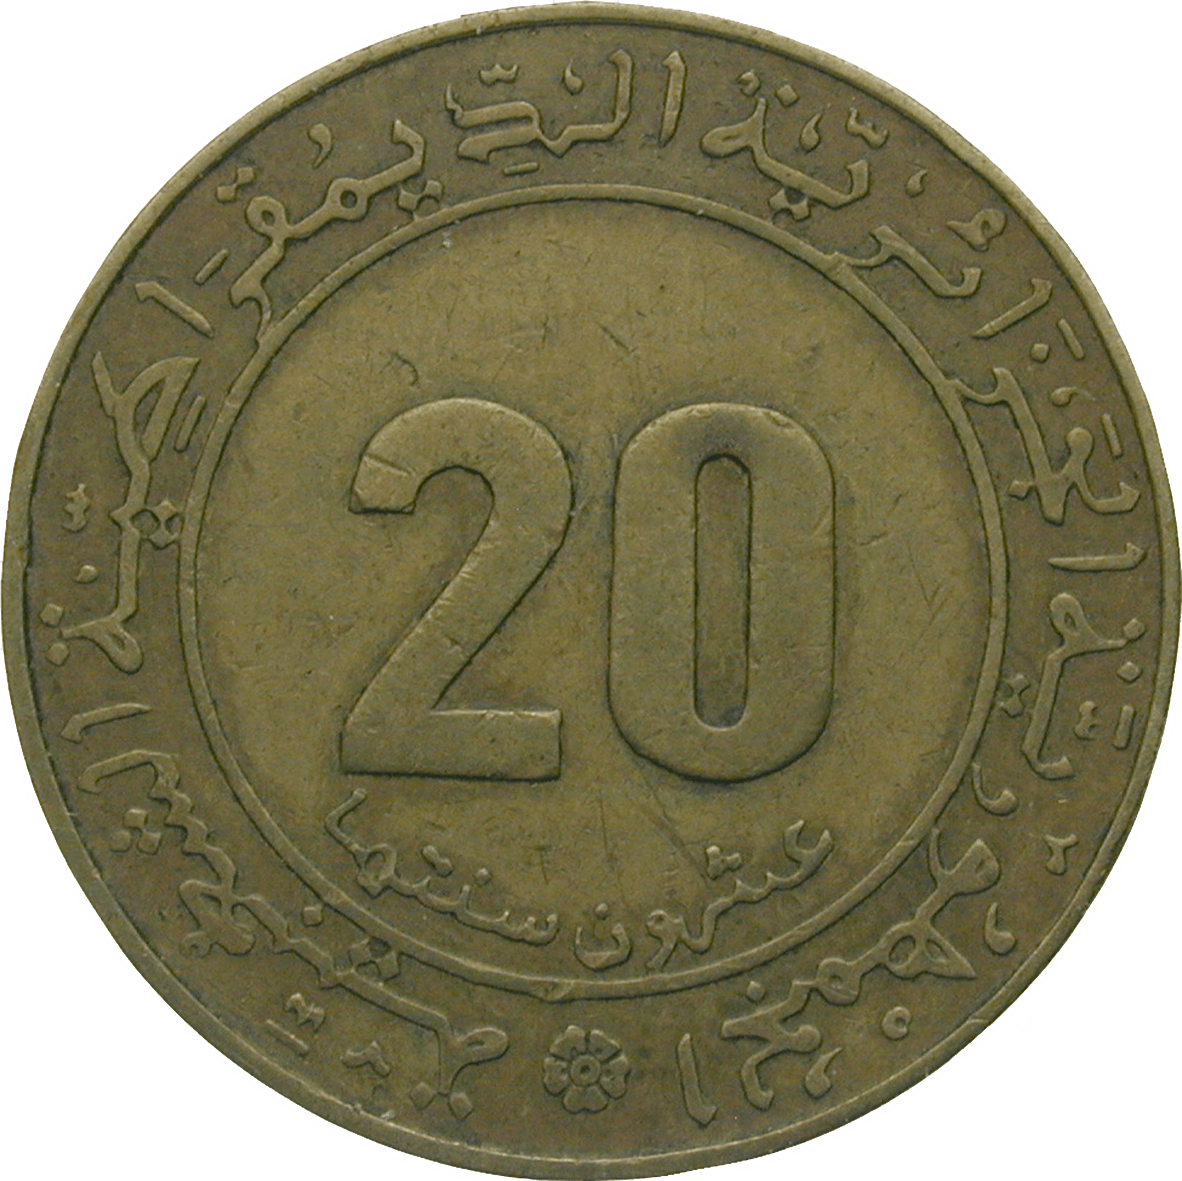 Republic of Algeria, 20 Centimes 1975 (reverse)